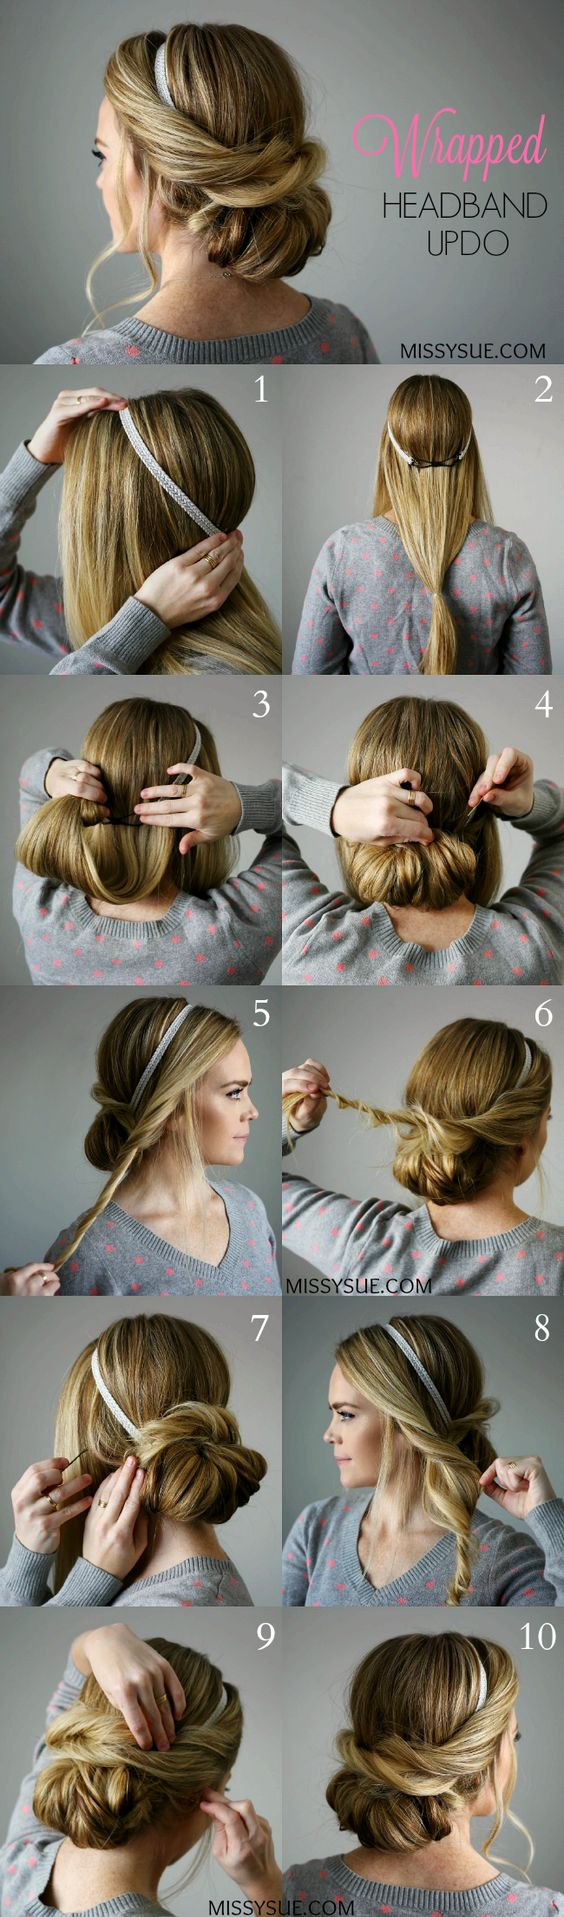 Hope this looks as good with my messy messy MESSY curly hair